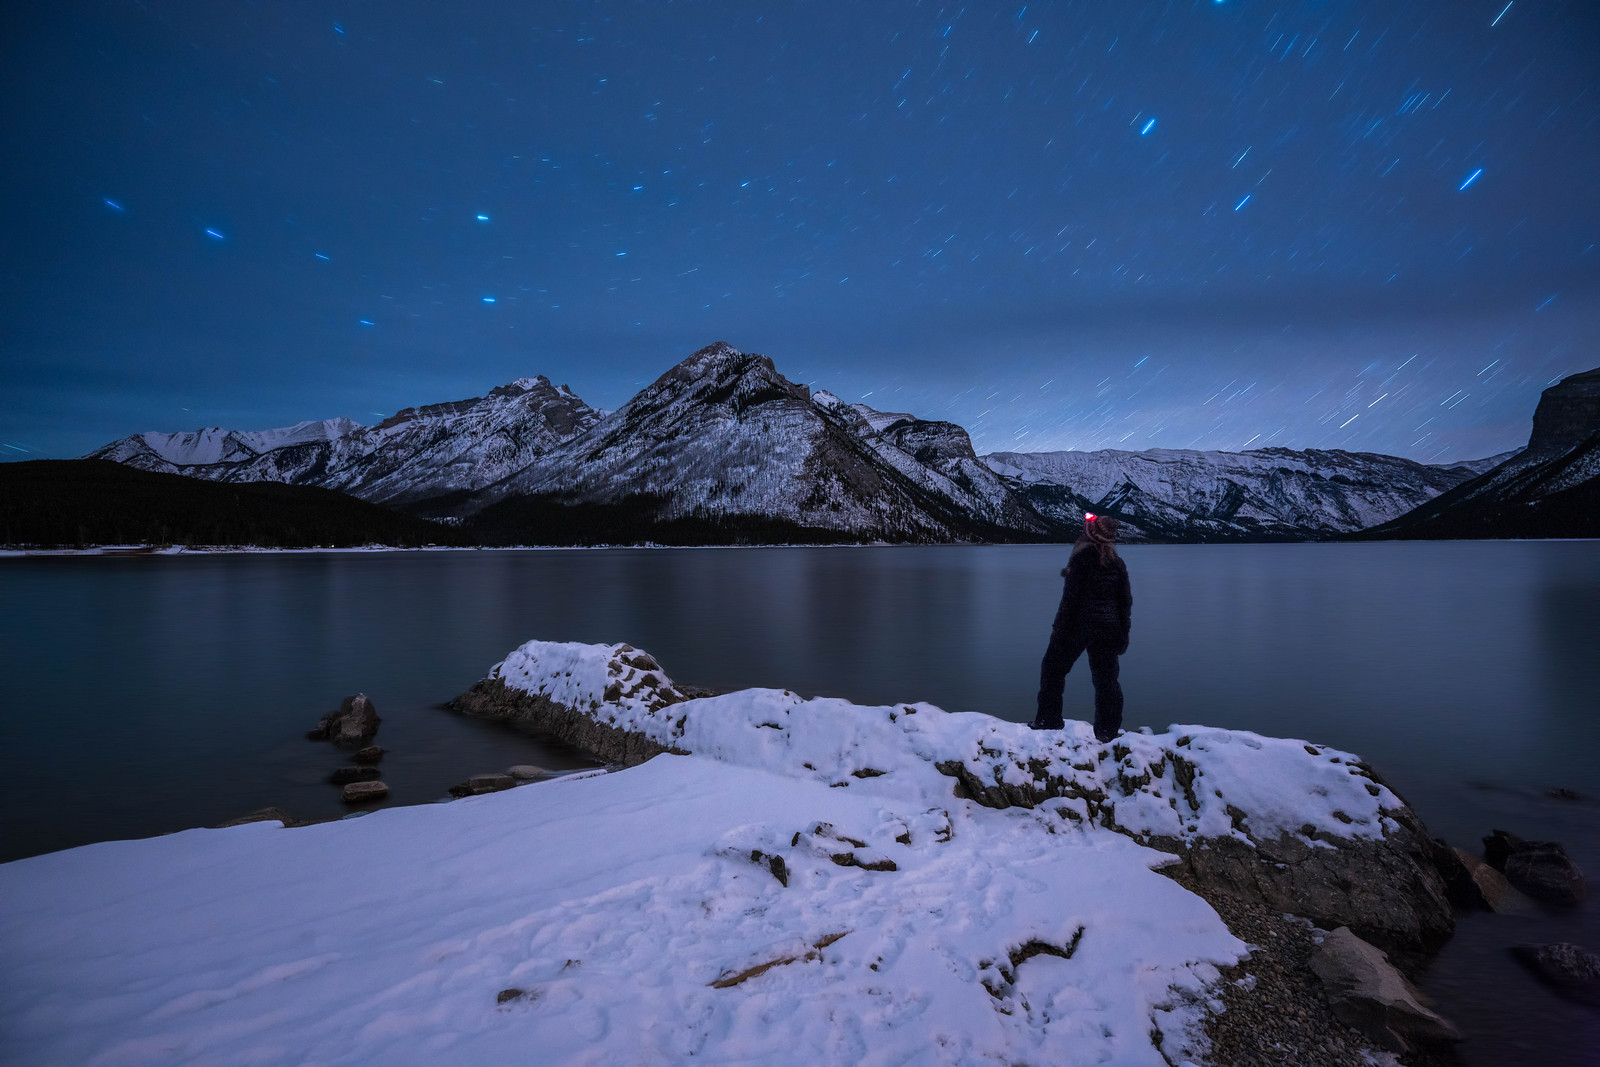 Stargazing on Lake Minnewanka in Banff National Park in Canada